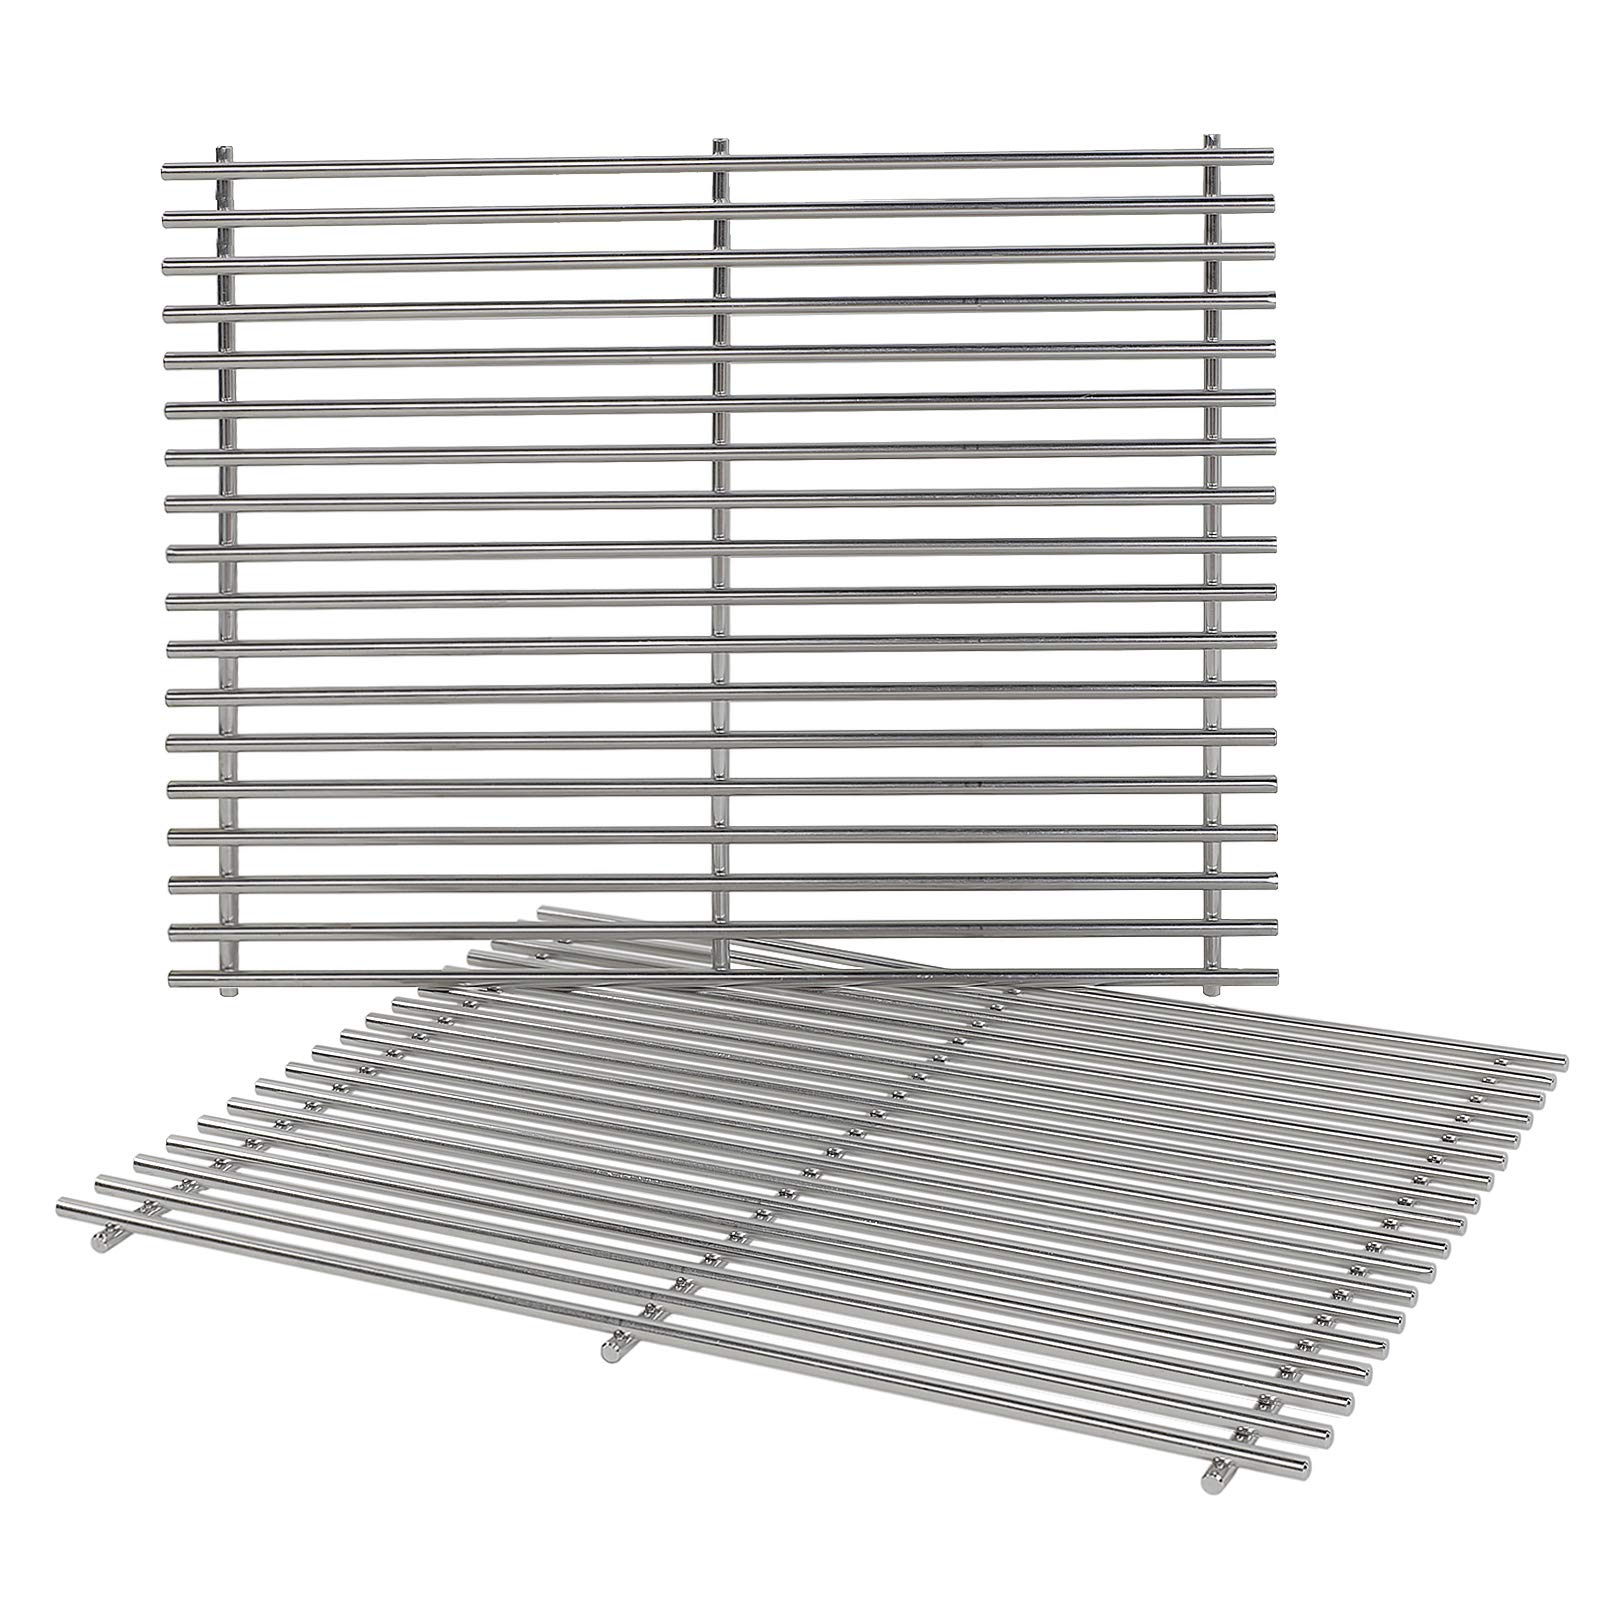 QuliMetal 7528, 304 Stainless Steel Cooking Grates (19.5 x 12.9 x 0.6) for Weber Genesis E and S Series 300 E310 E320 S310 S320 Gas Grills by QuliMetal